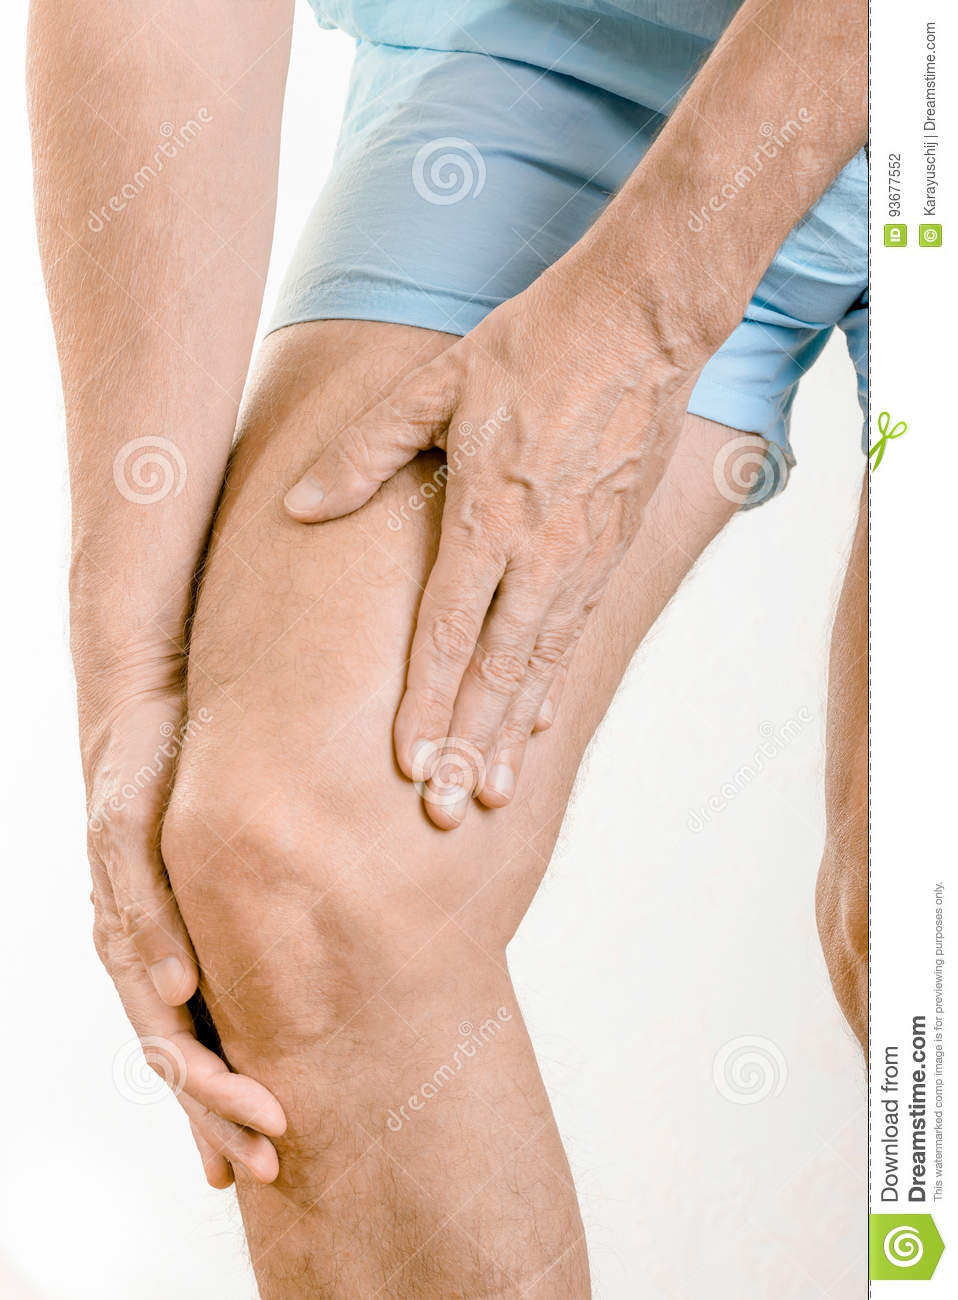 Knee Joint That Make The Bones And Muscles